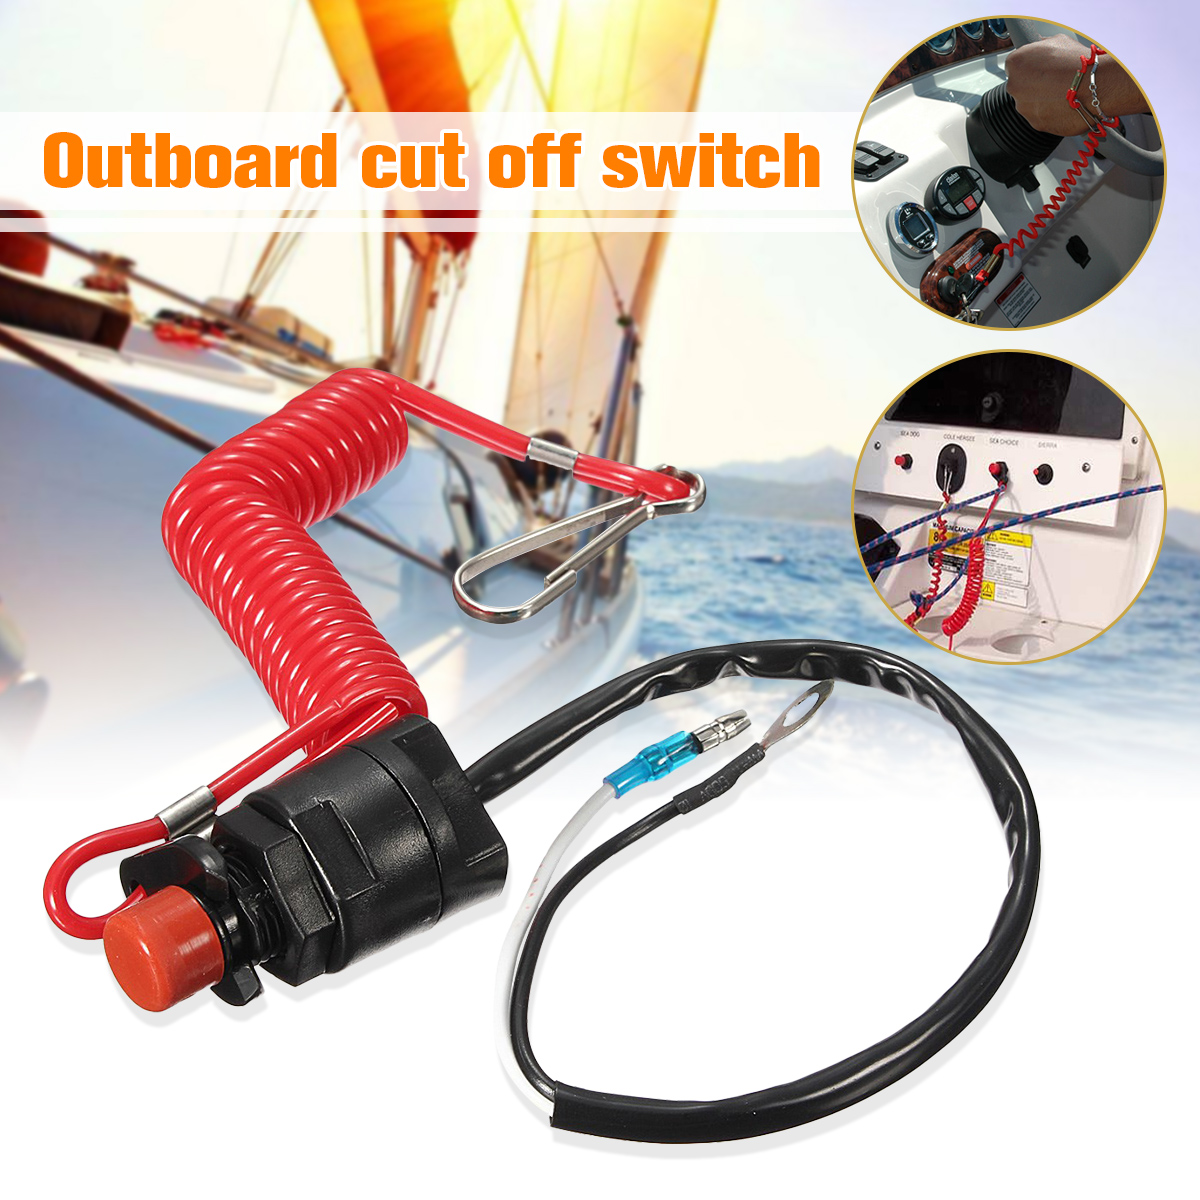 2 Pcs Outboard Engine Ignition Emergency Kill Stop Switch Safety Tether Lanyard for Yamaha Outboard Engine Motor